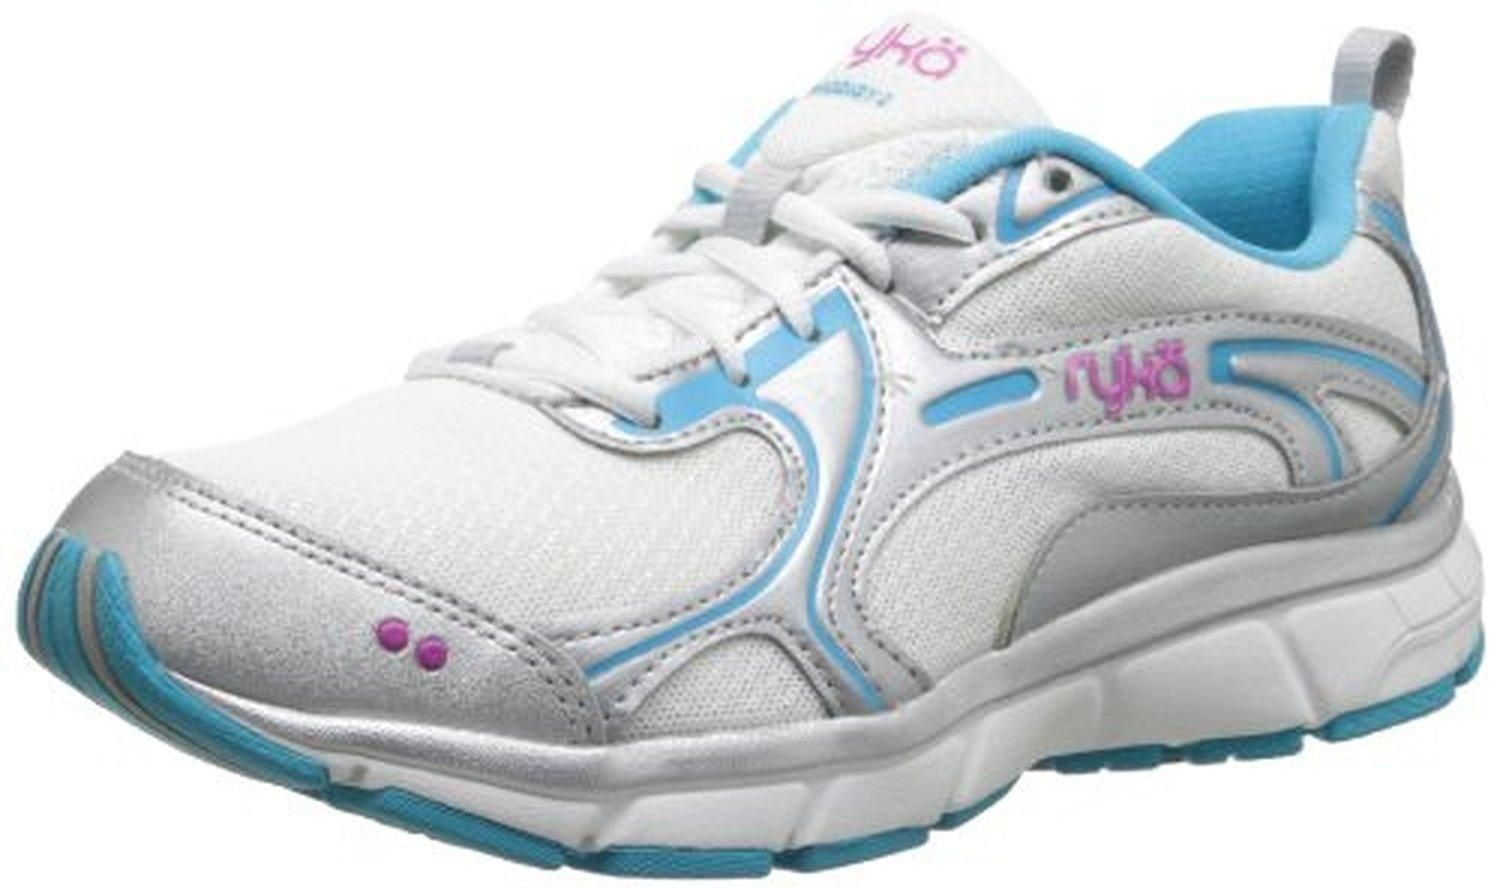 ryka stability shoes